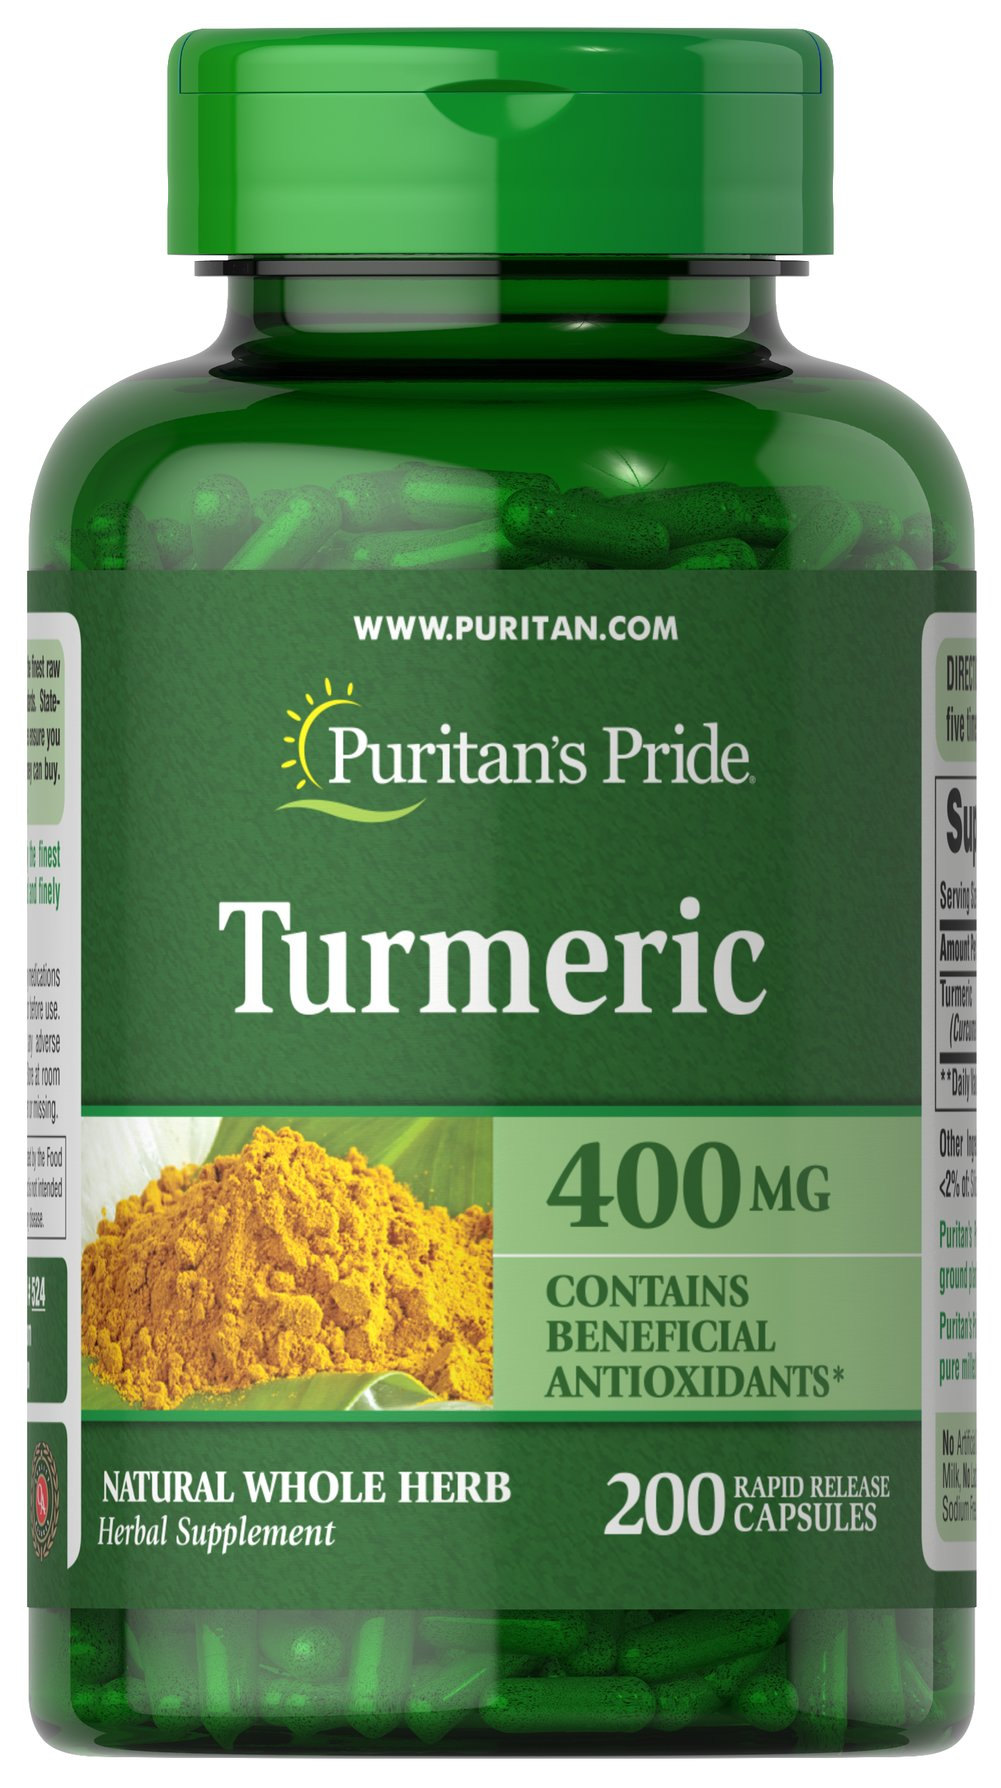 Turmeric 400 mg <p>Turmeric, a common spice used in curry dishes, has become a popular herbal supplement due to its potential antioxidant properties, which may contribute to brain health.** Available in 400 mg capsules, adults can take one capsule three to six times daily with meals. Capsules may be opened and prepared as a tea.</p>  200 Capsules 400 mg $12.79